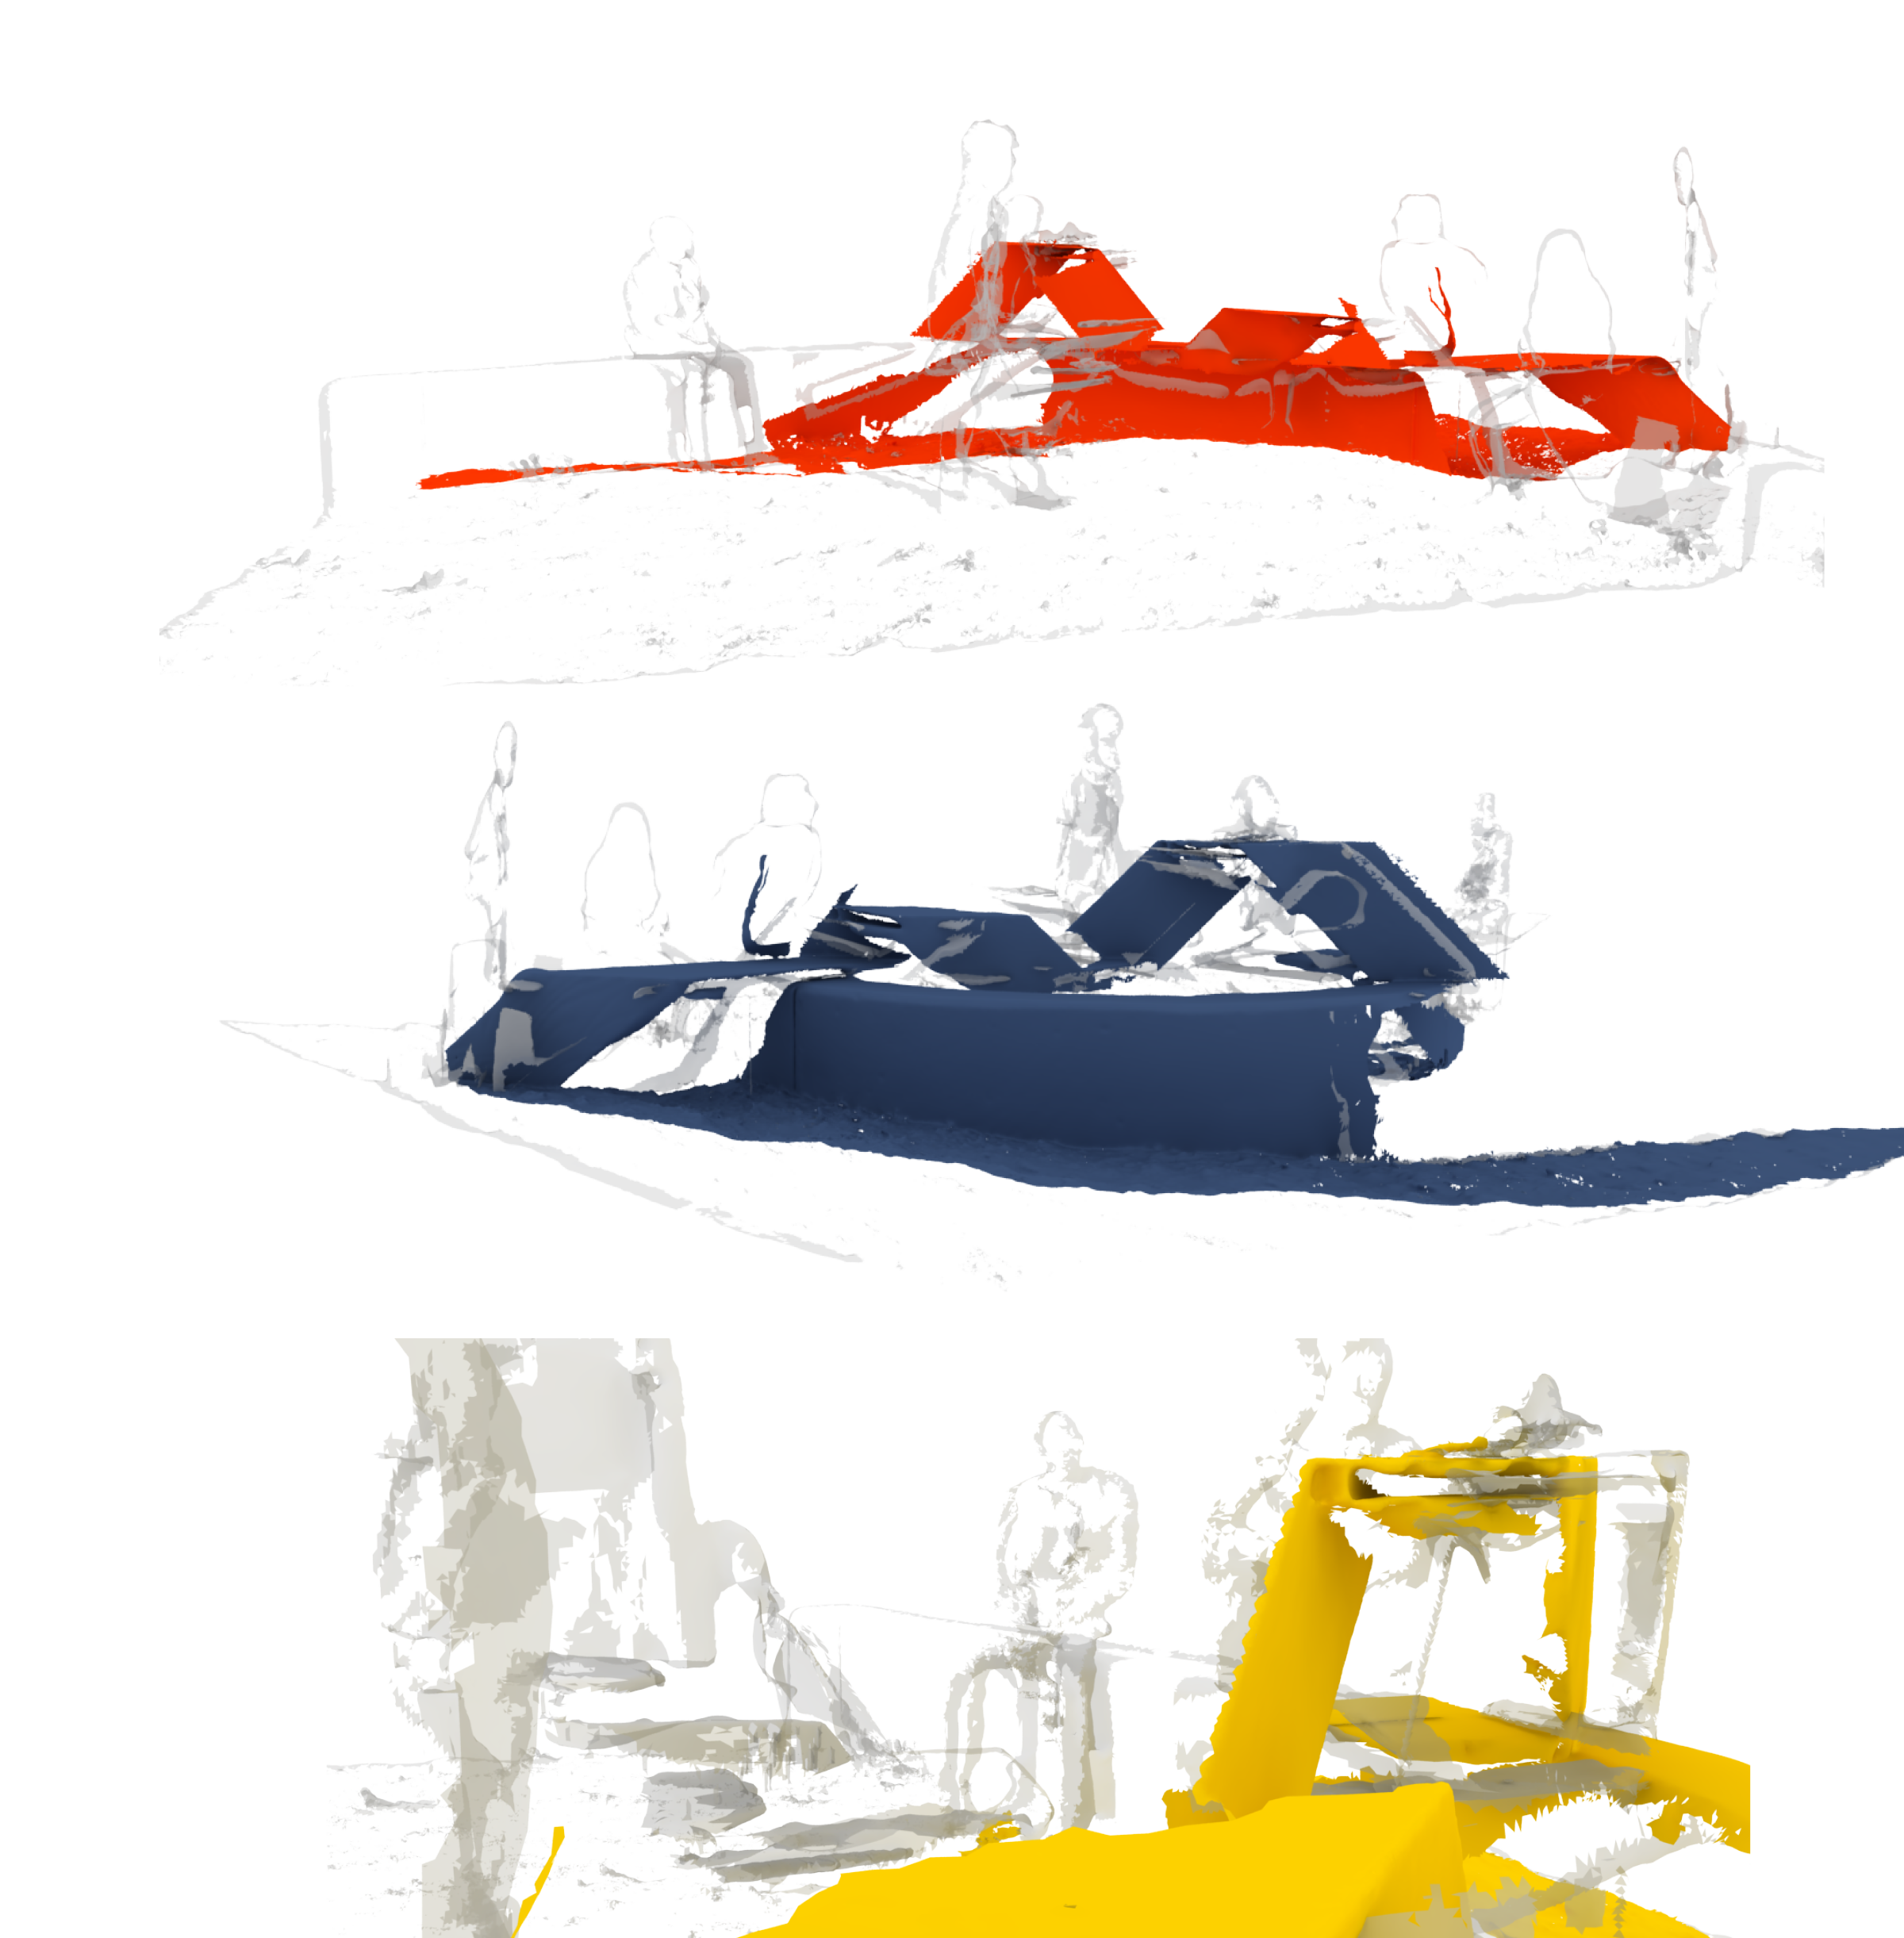 CIty-College-New-York-CUNY-Tom-Piscina-3D-laser-scanning-point-cloud-new-york.png